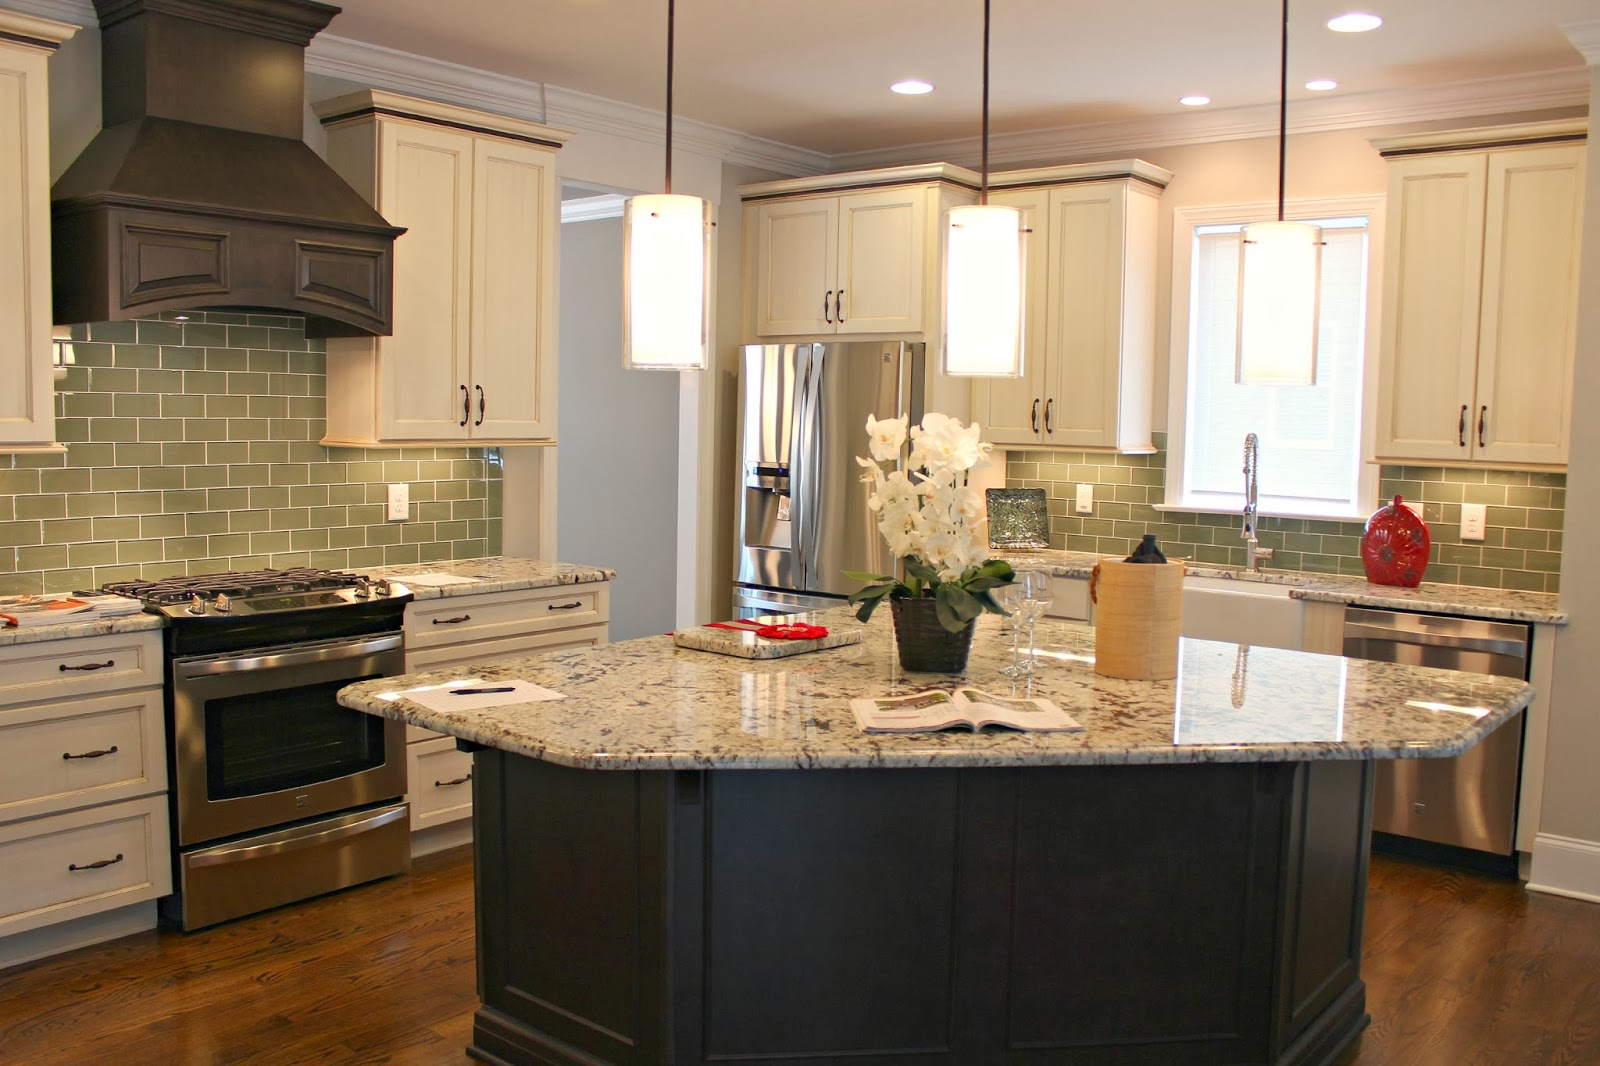 Carolina on my mind parade of homes Kitchen triangle design with island